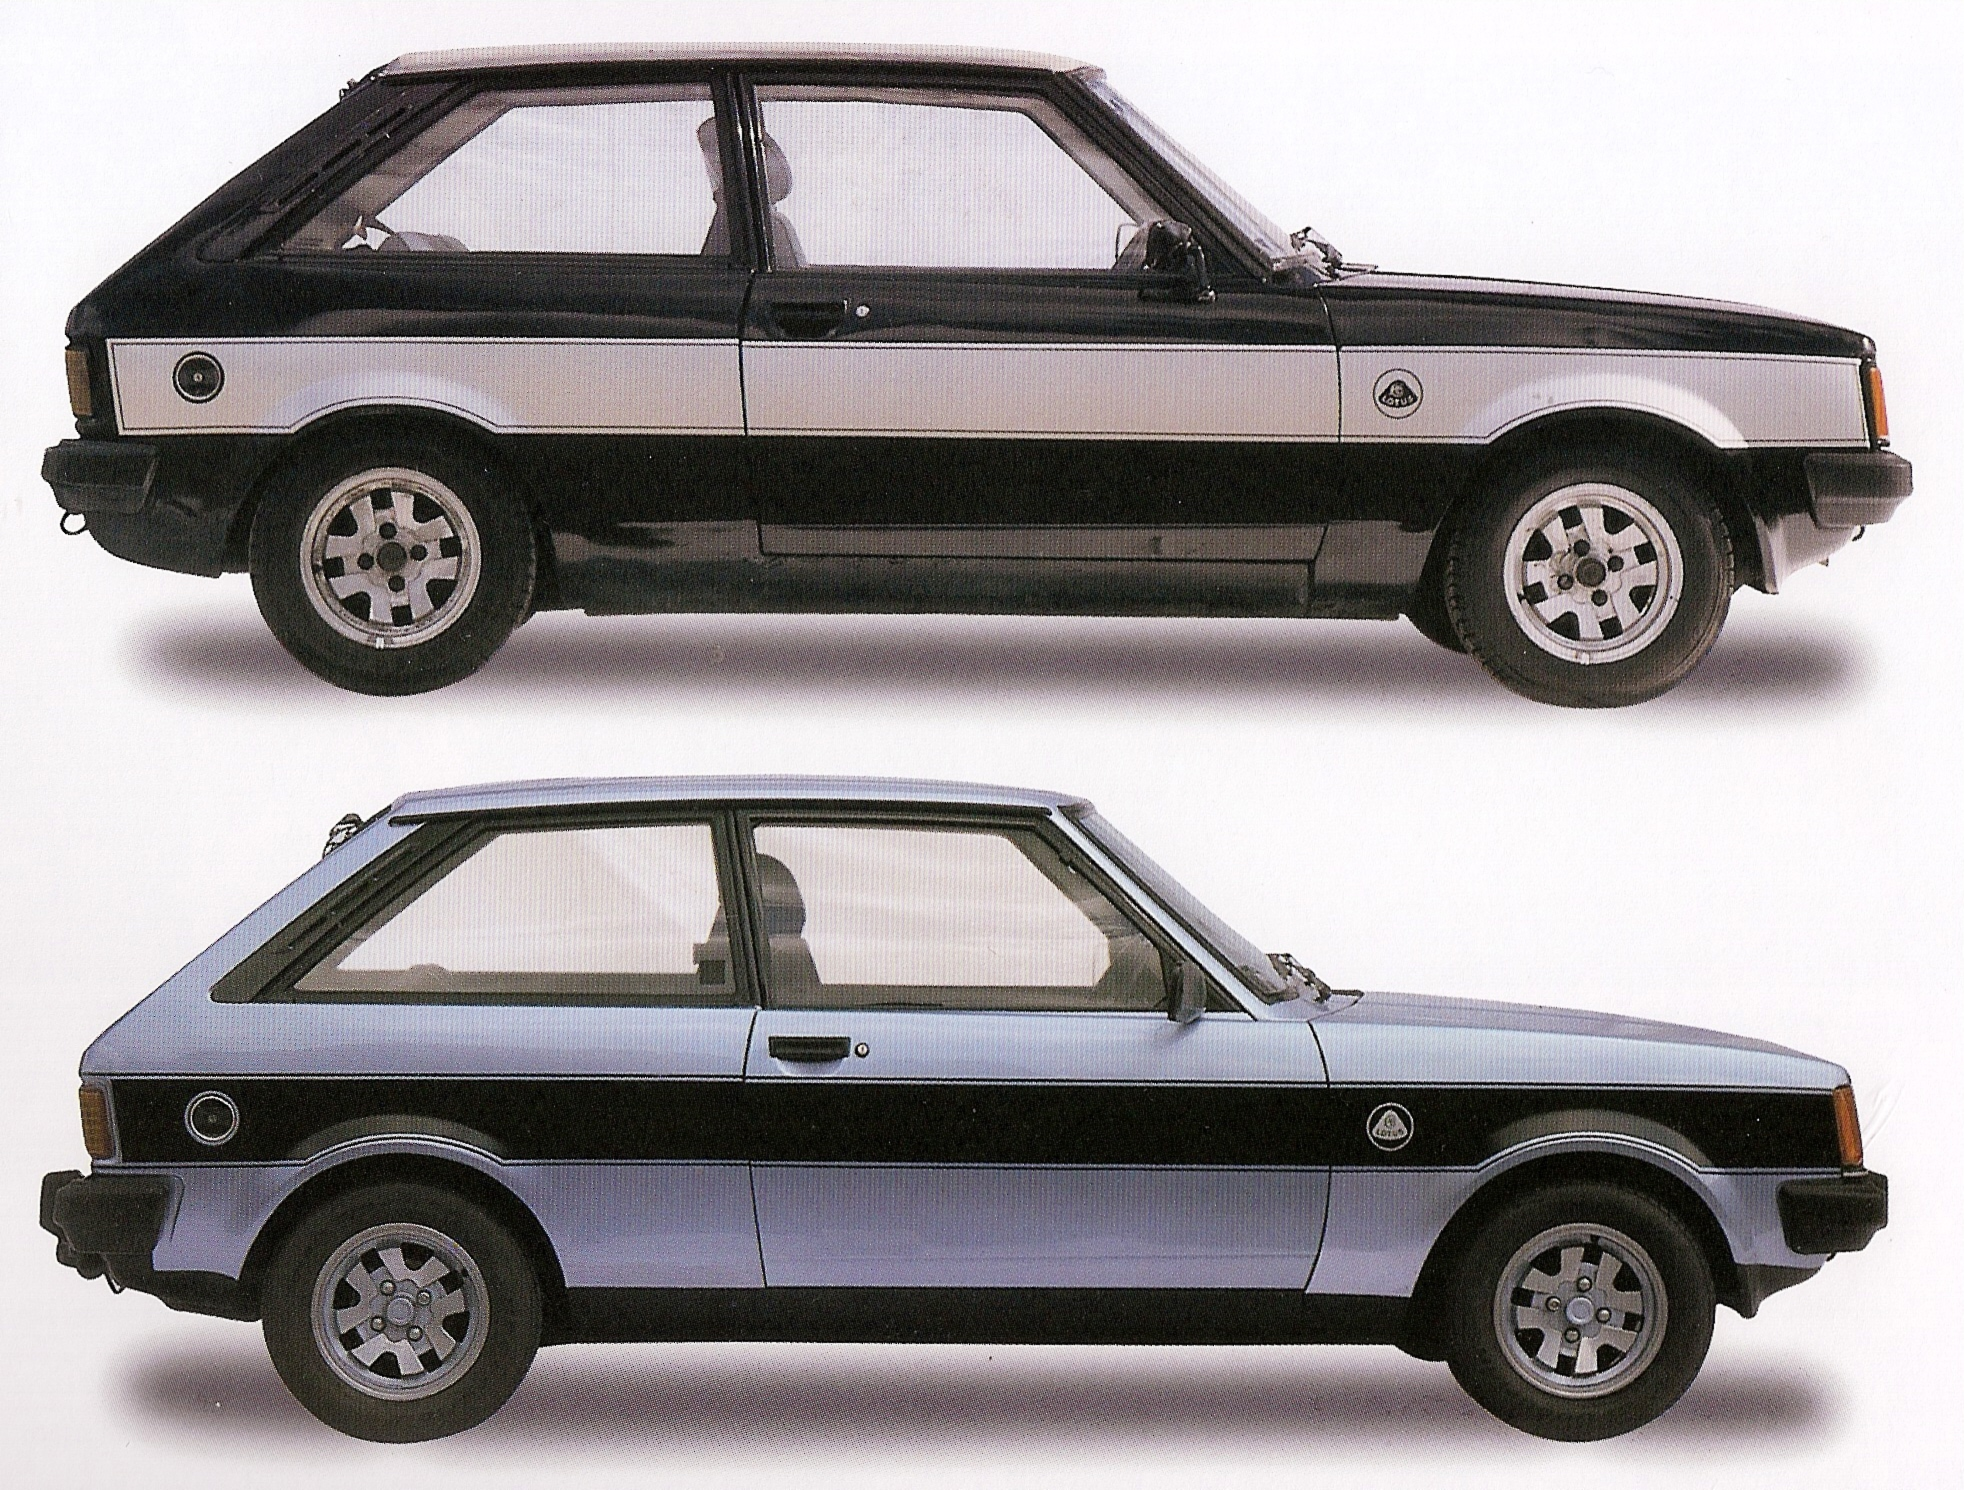 Two Color Schemes for the Talbot Sunbeam Lotus